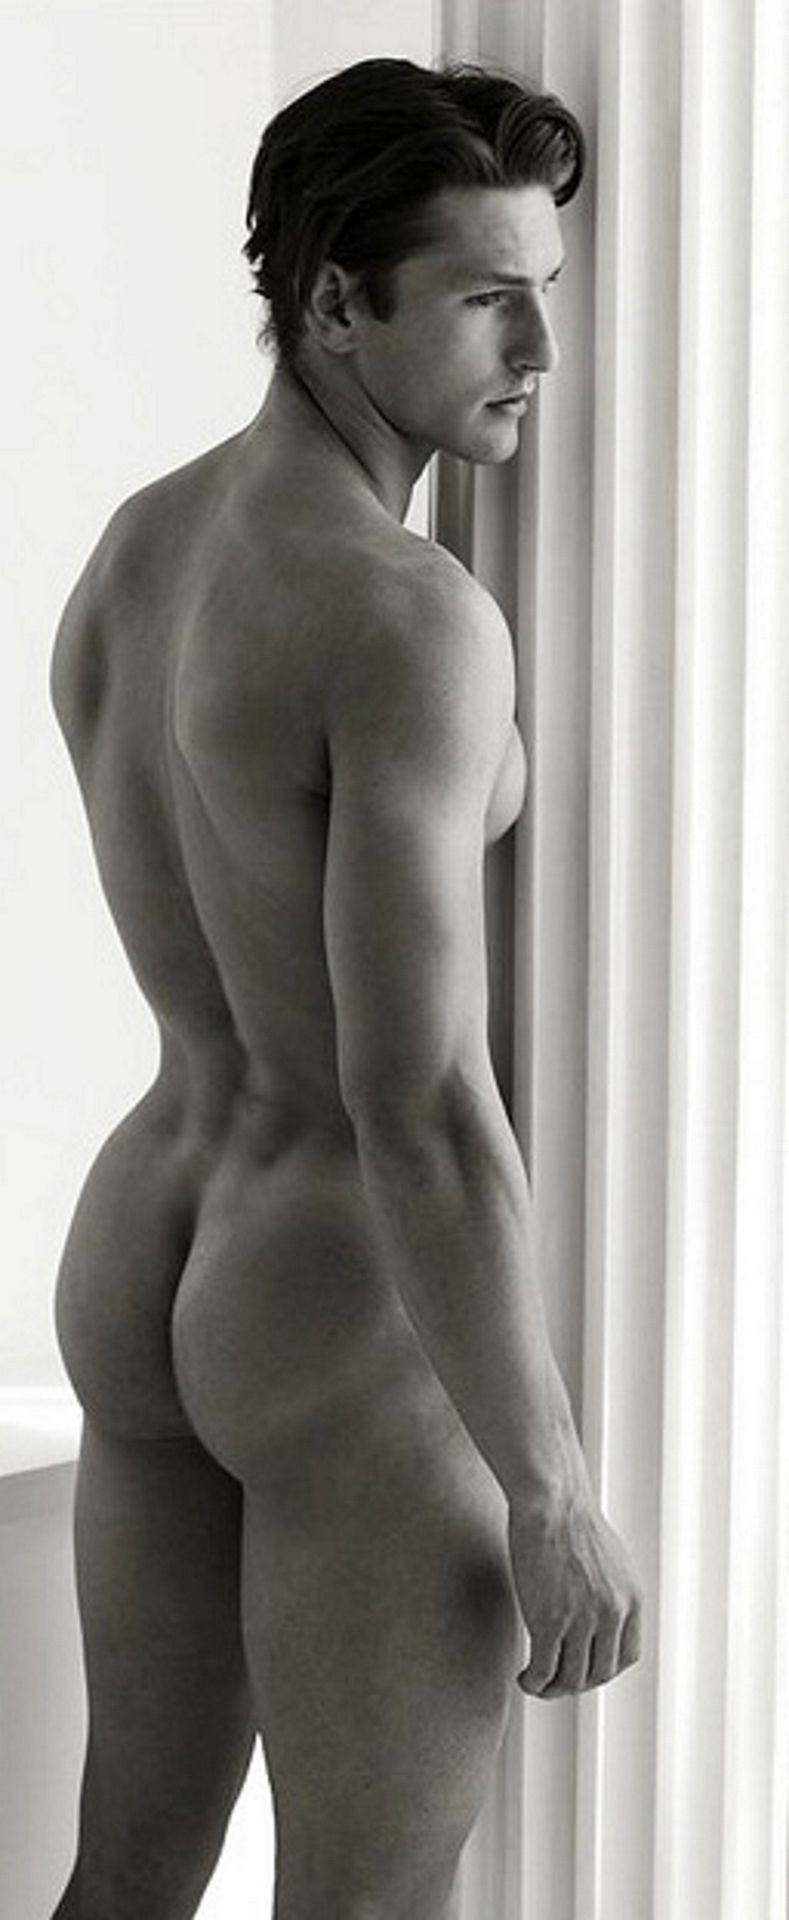 Dudesnudes And More Dudes Man Anatomy Art Of Man Attractive Men